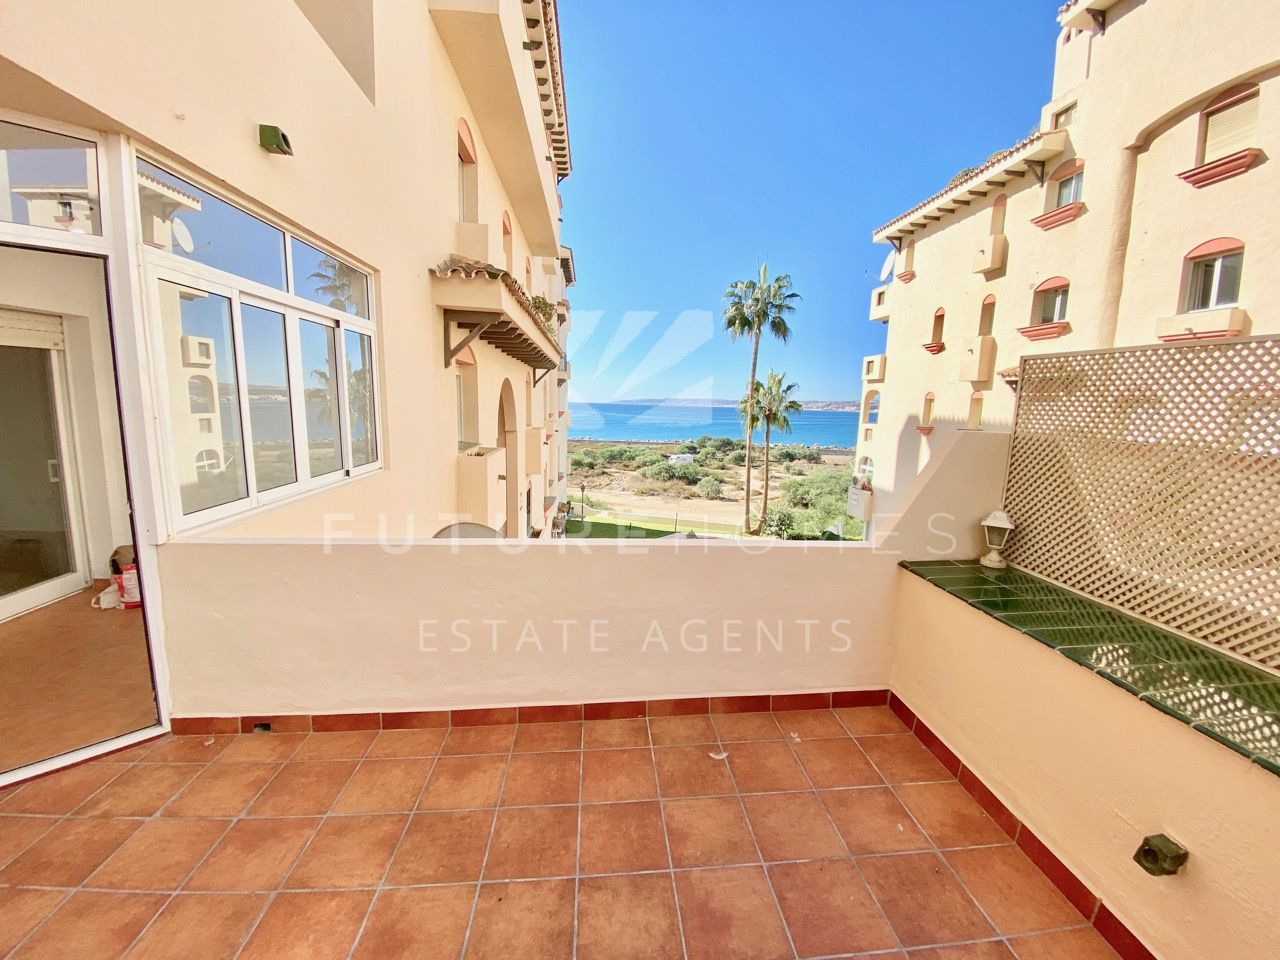 Estepona Port! One bedroom apartment for sale with sea views and a garage space